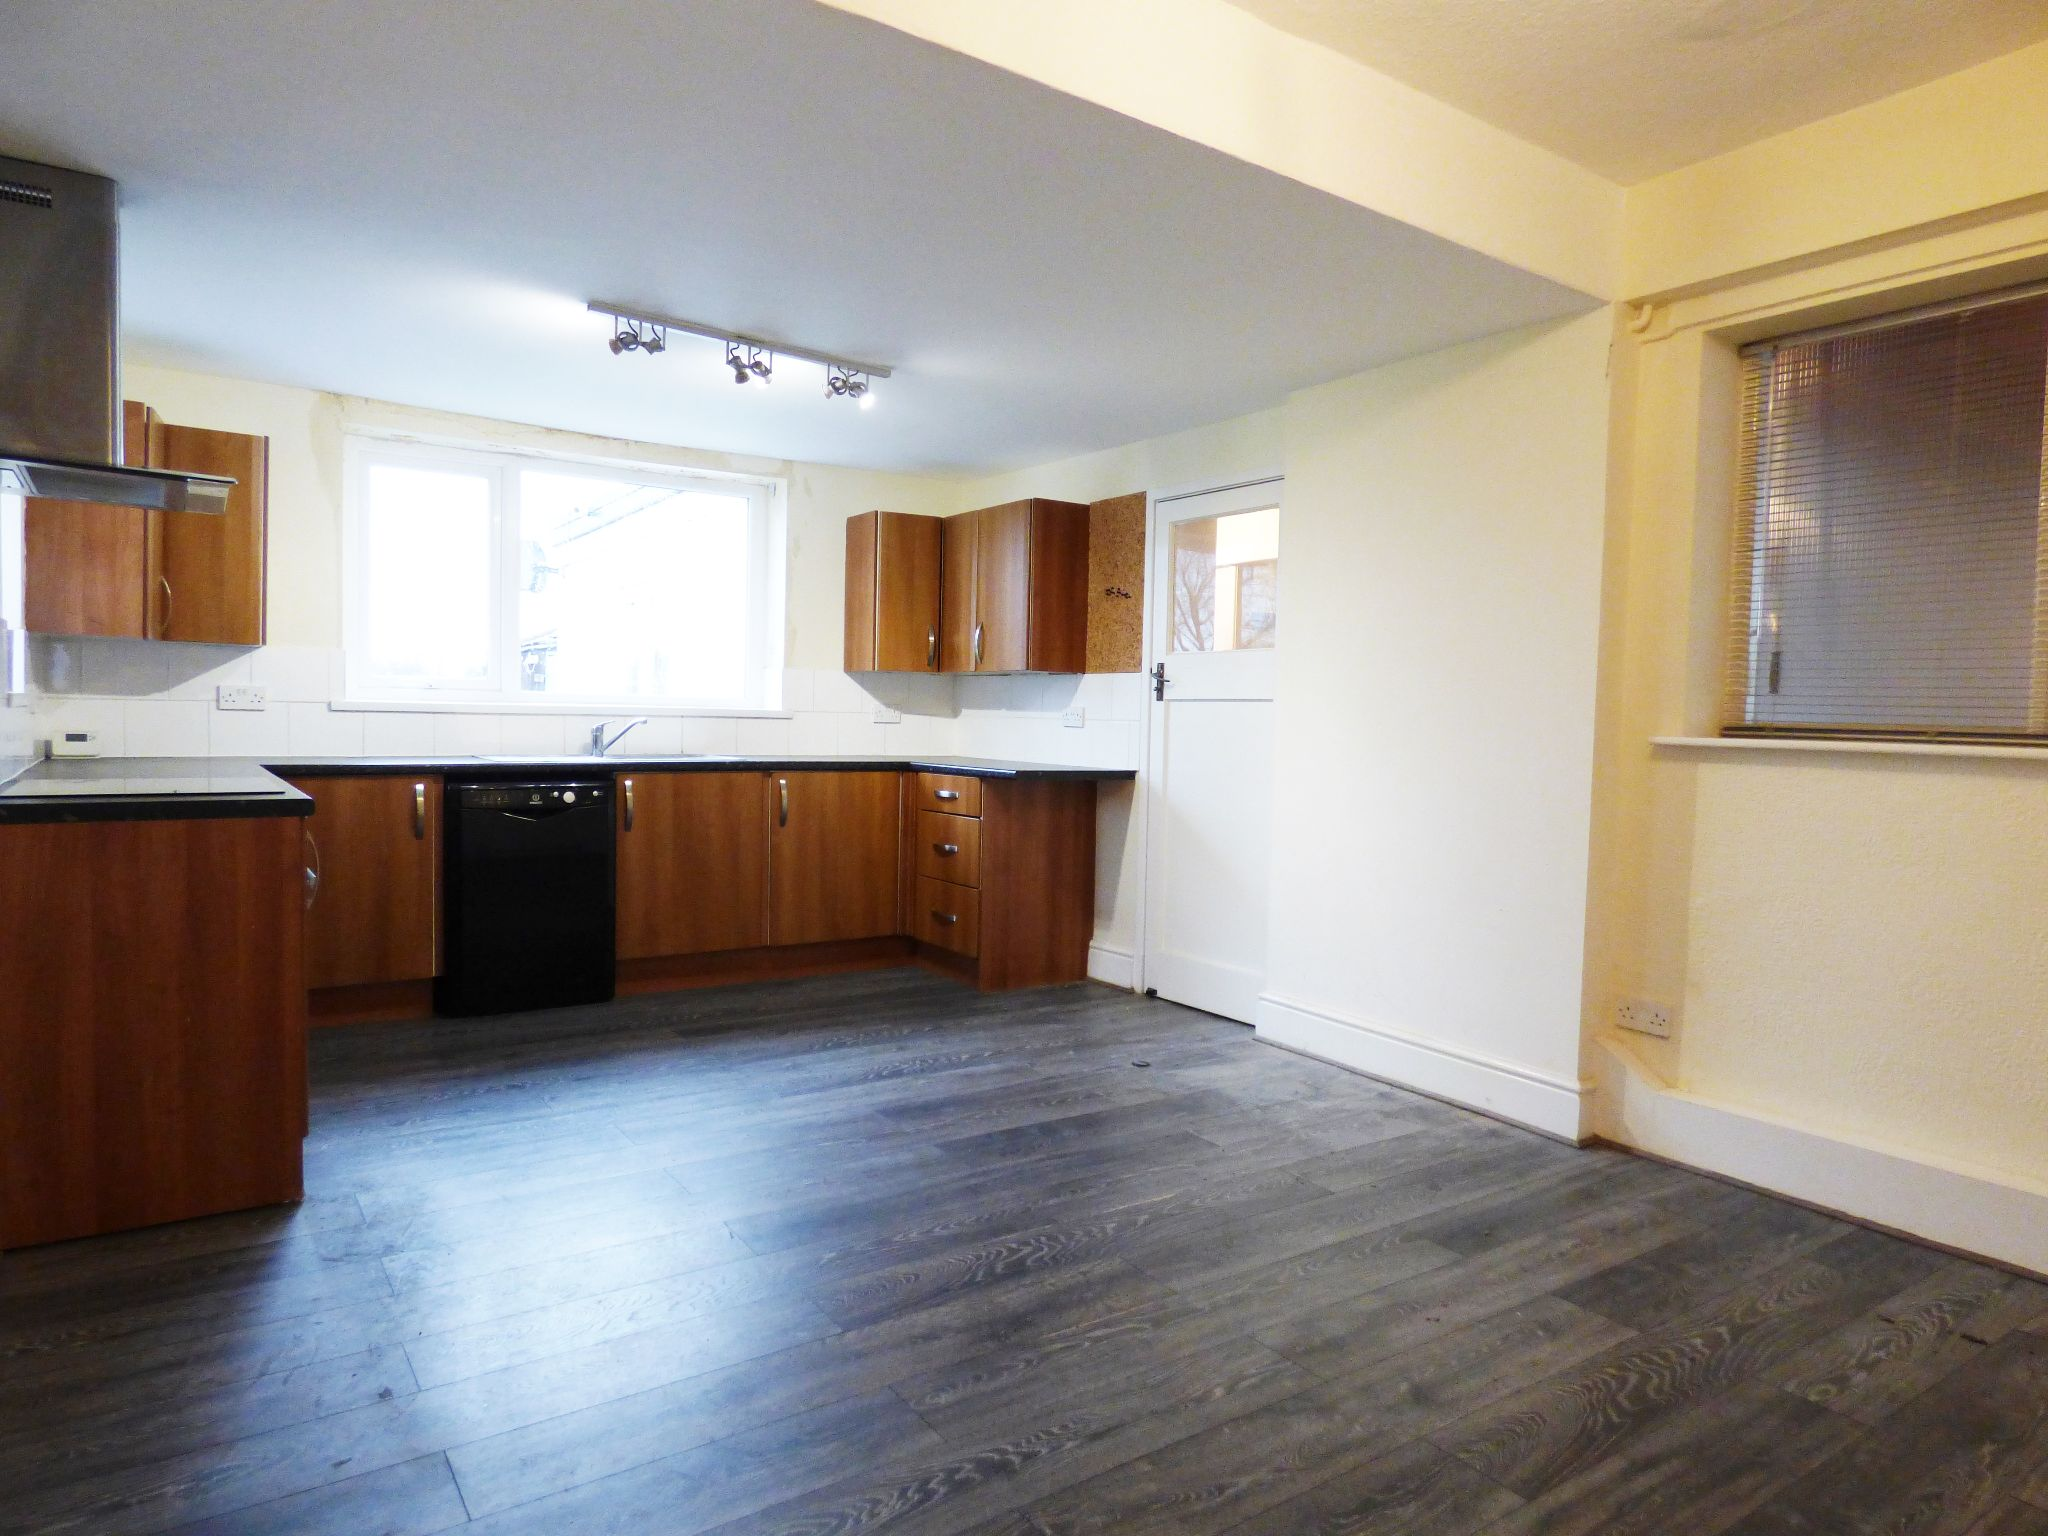 3 Bedroom Detached Bungalow For Sale - Dining Kitchen